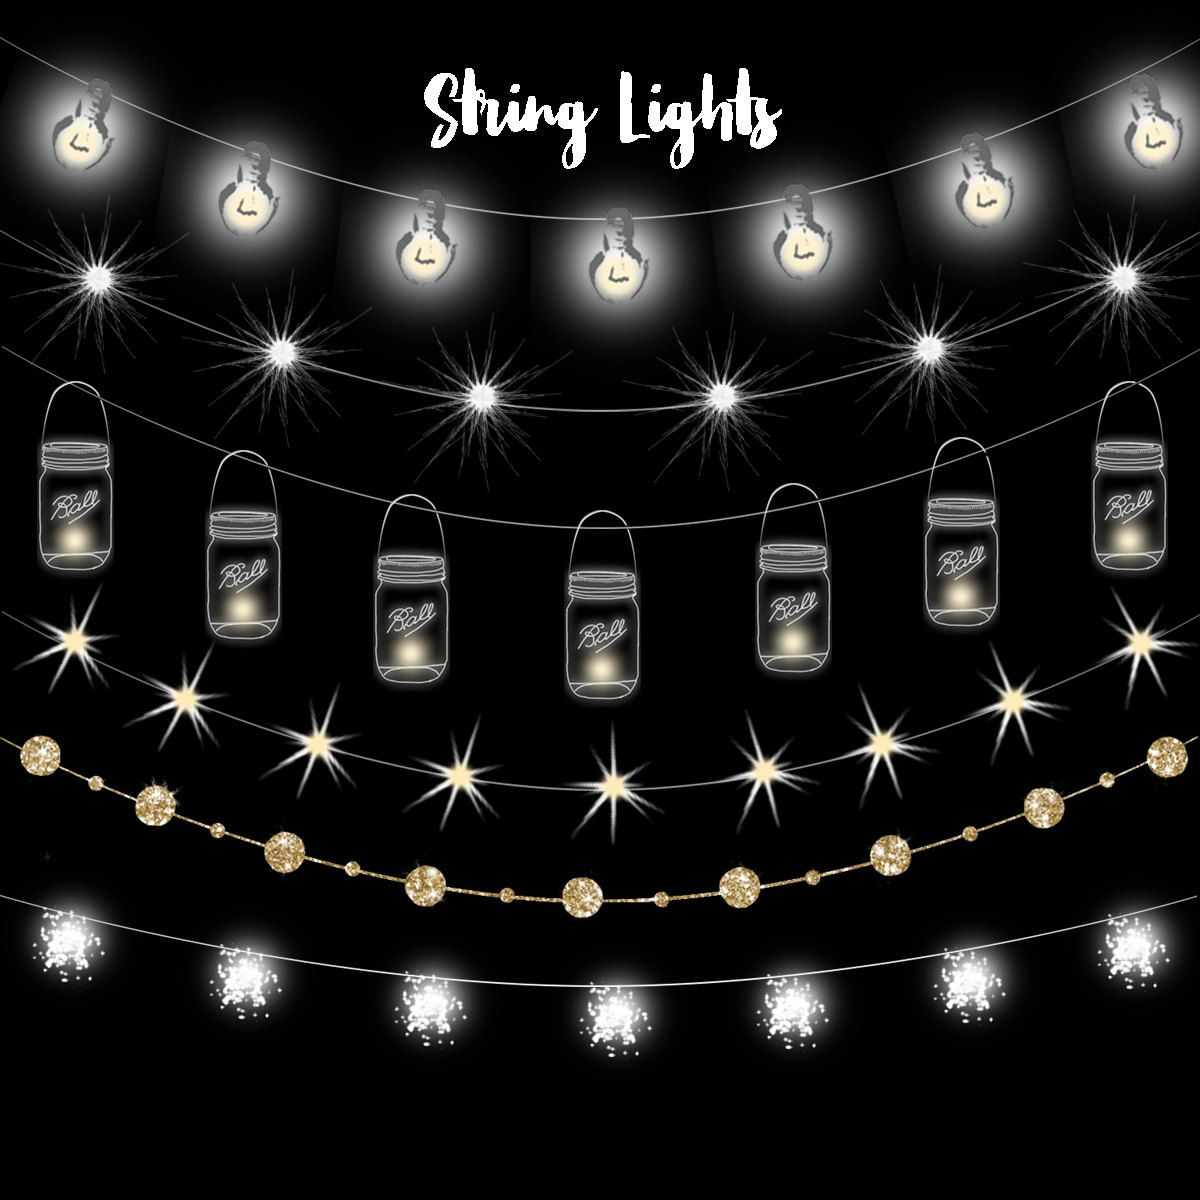 White twinkle lights clipart vector images gallery for Free.